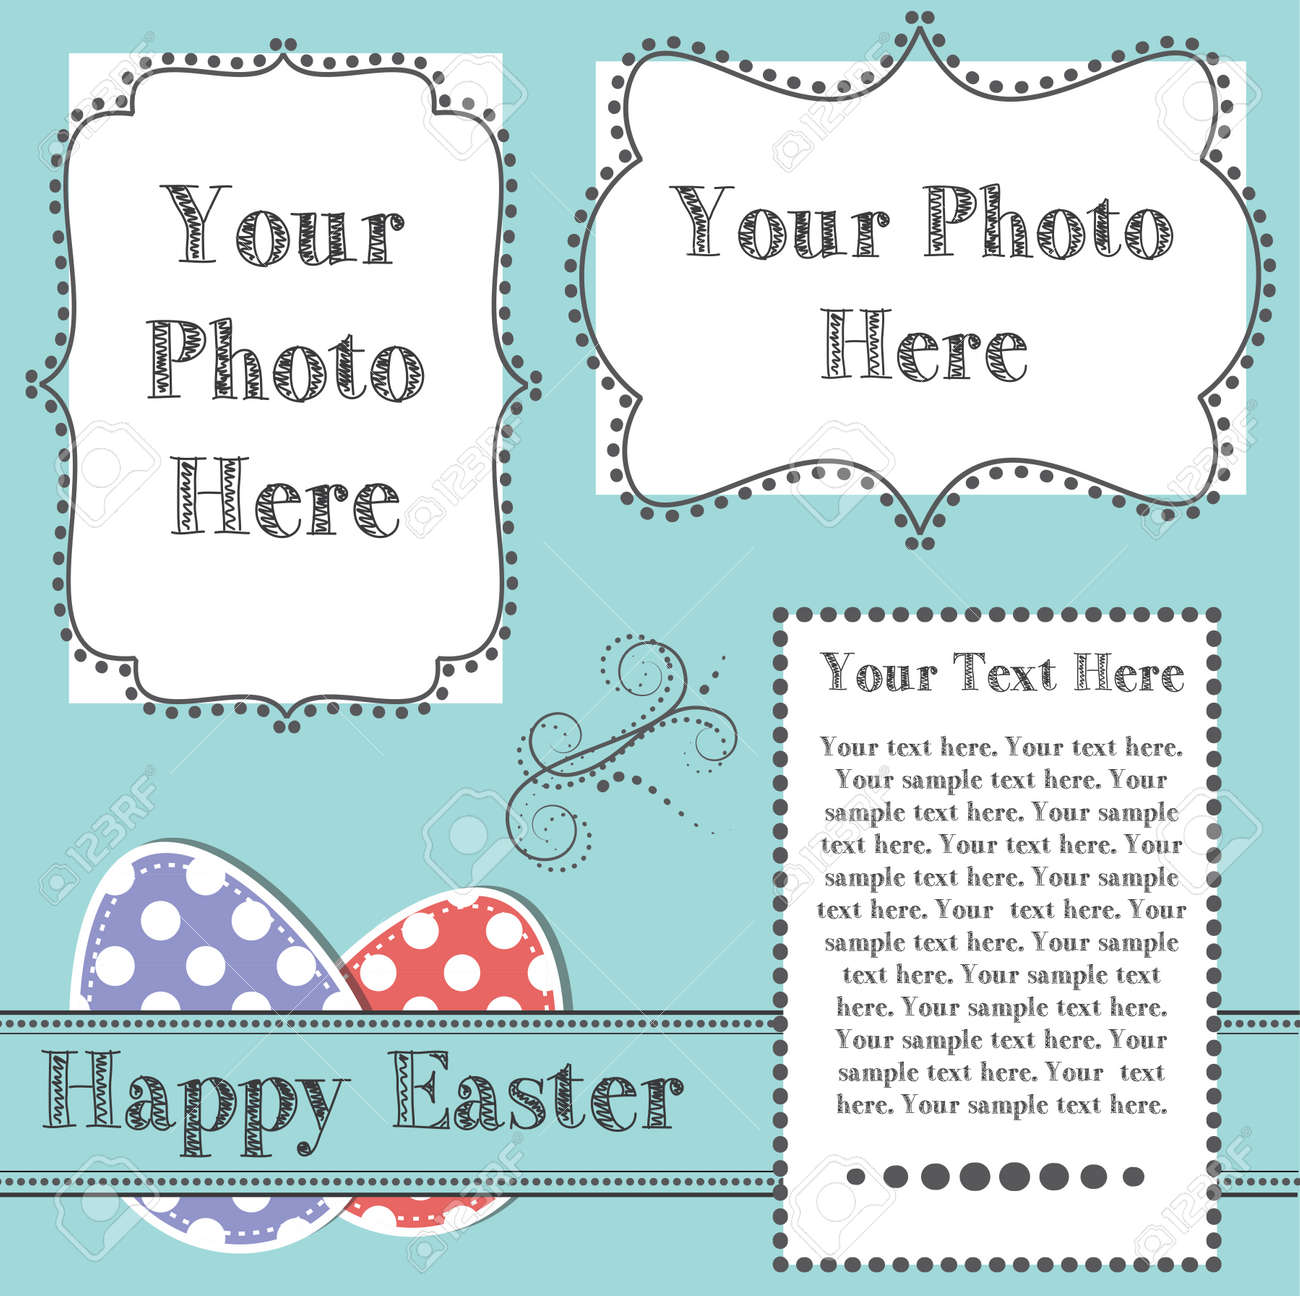 Easter design template with two 4x6 transparent frames for your